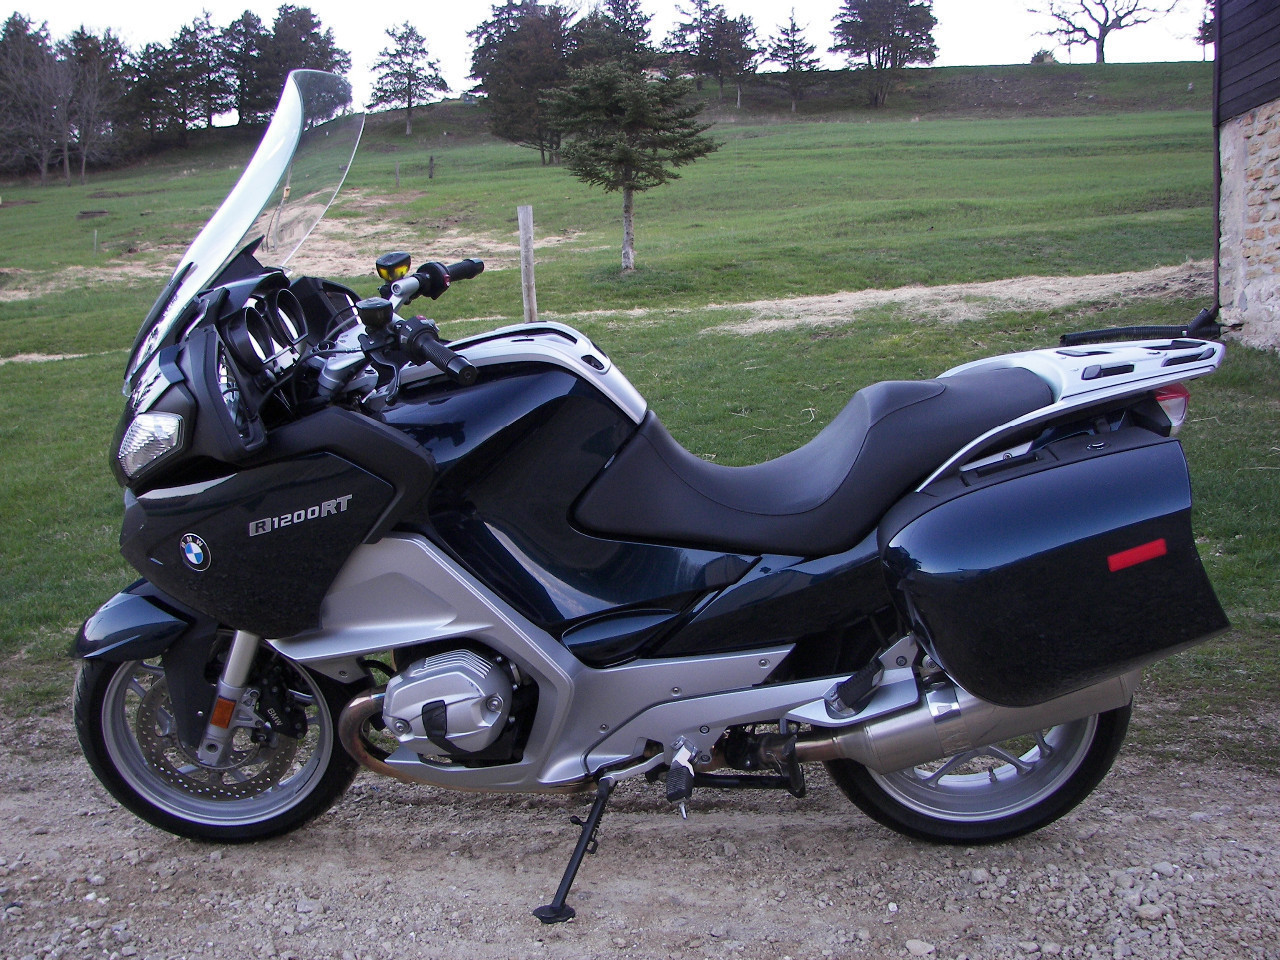 2013 bmw r 1200 rt touring motorcycle from mazomanie wi today sale. Cars Review. Best American Auto & Cars Review